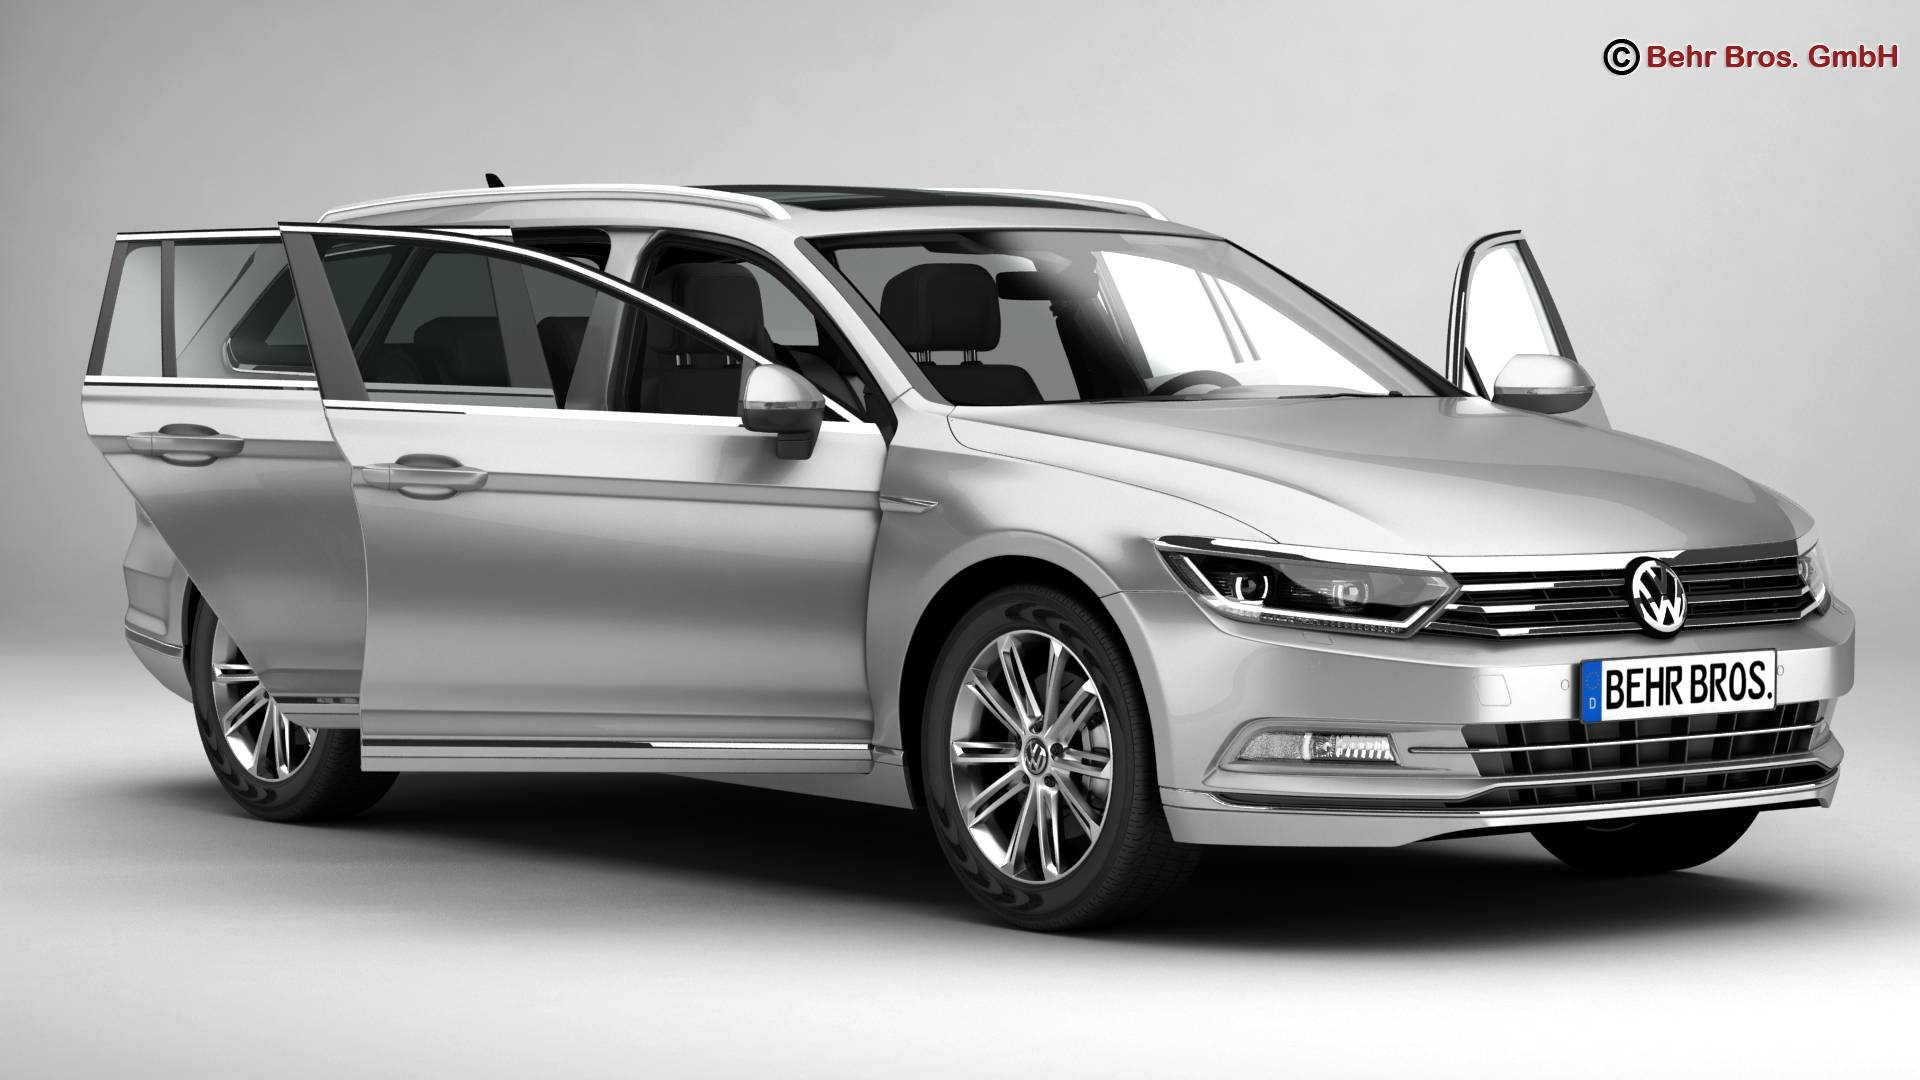 volkswagen passat variant 2015 3d model buy volkswagen passat variant 2015 3d model flatpyramid. Black Bedroom Furniture Sets. Home Design Ideas